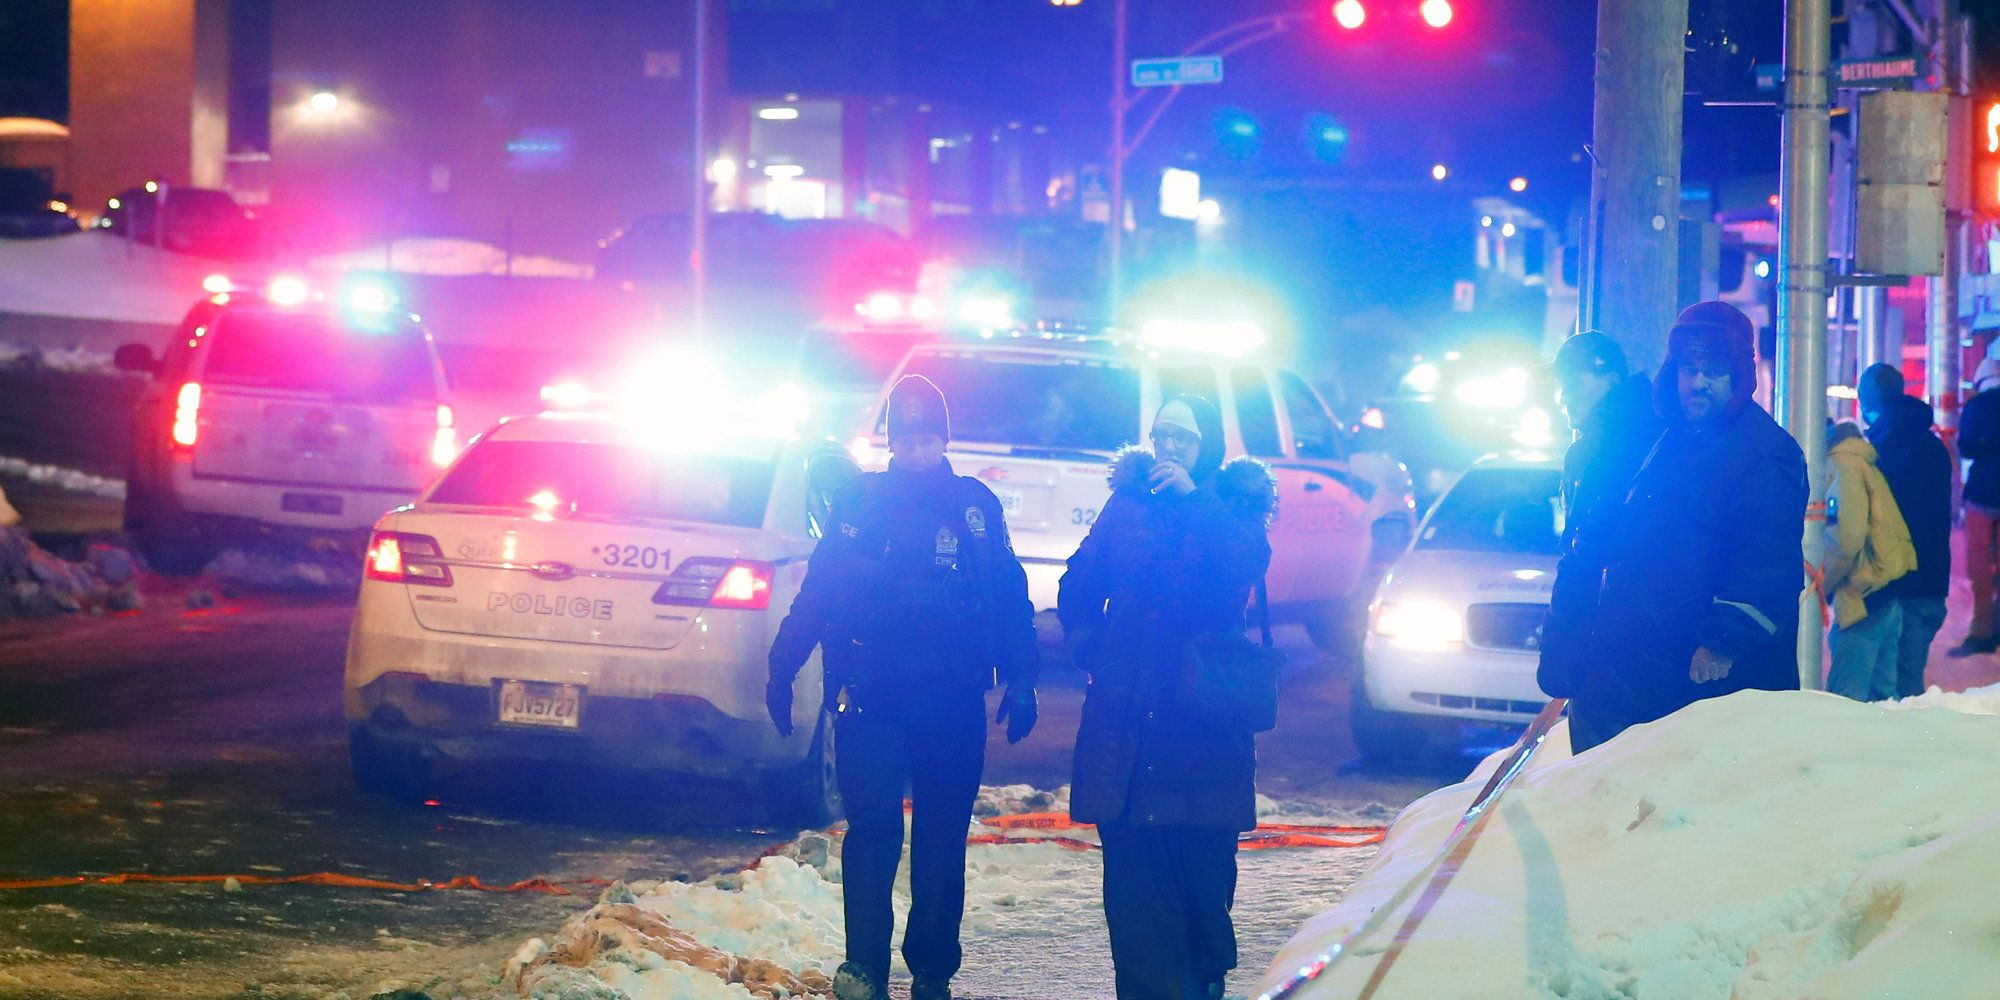 6 Dead 8 Wounded In Shooting At Quebec Mosque Quebec City